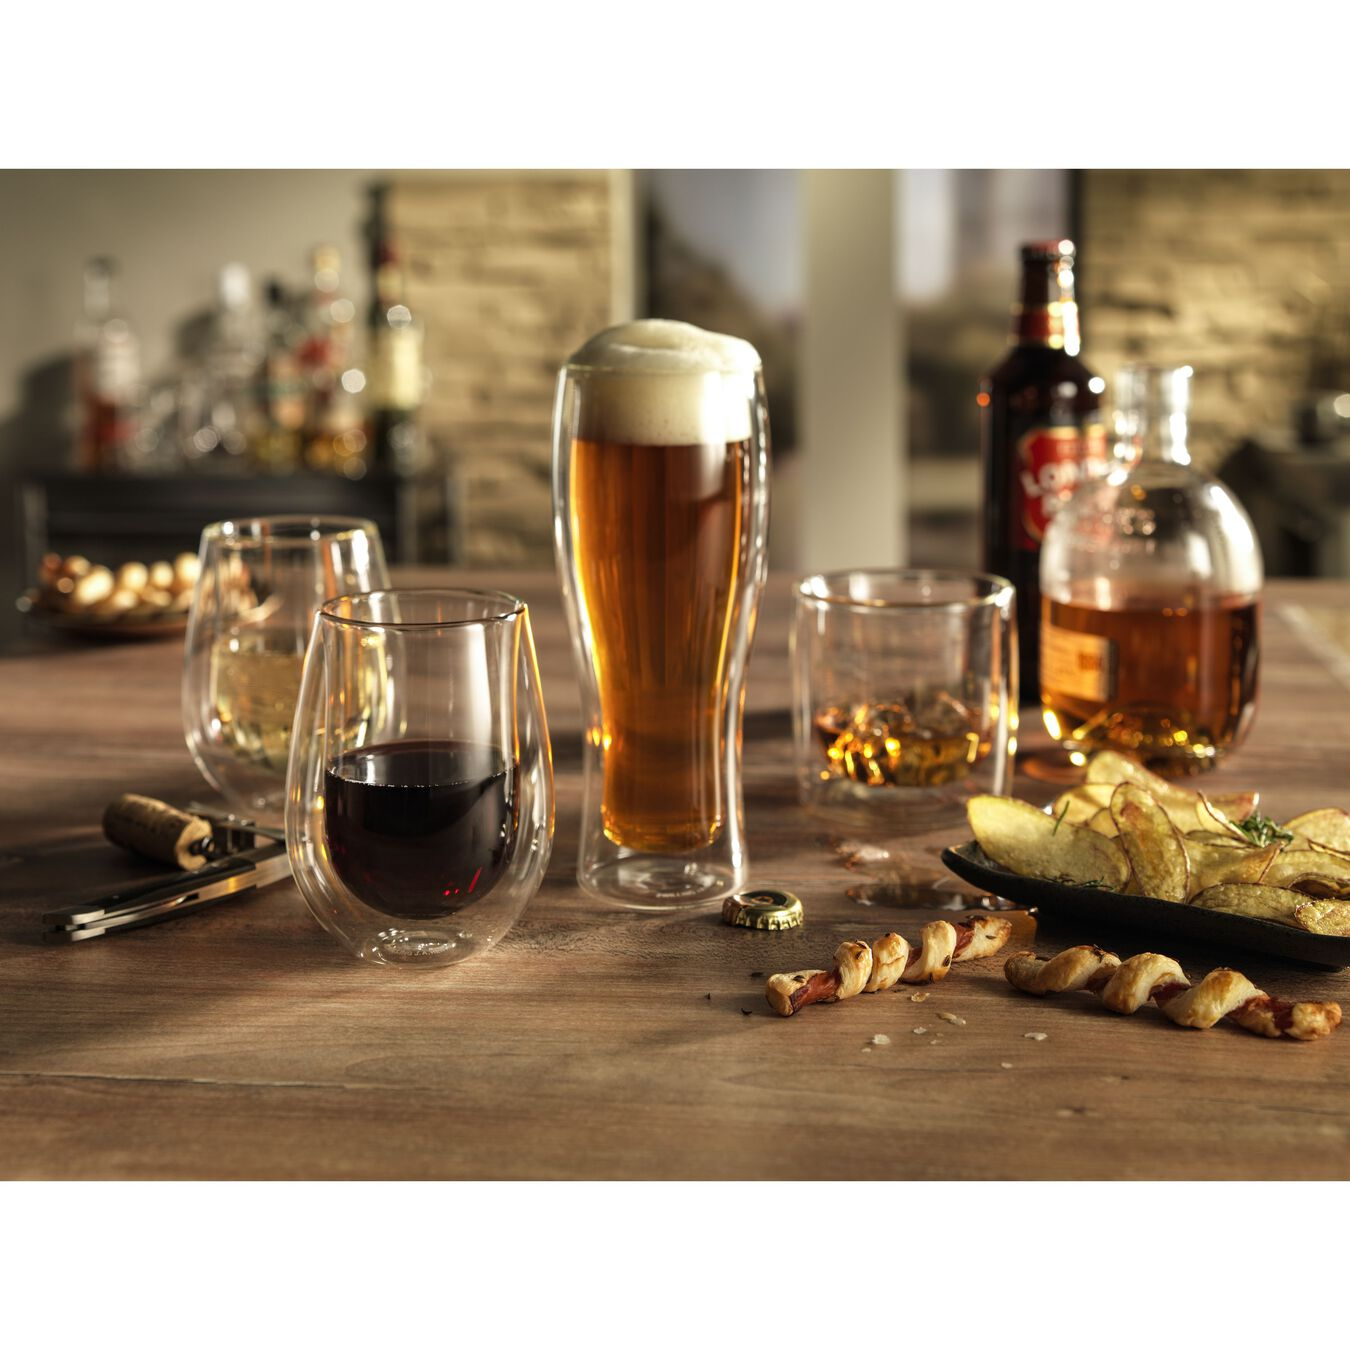 2 Piece Beer glass set,,large 3